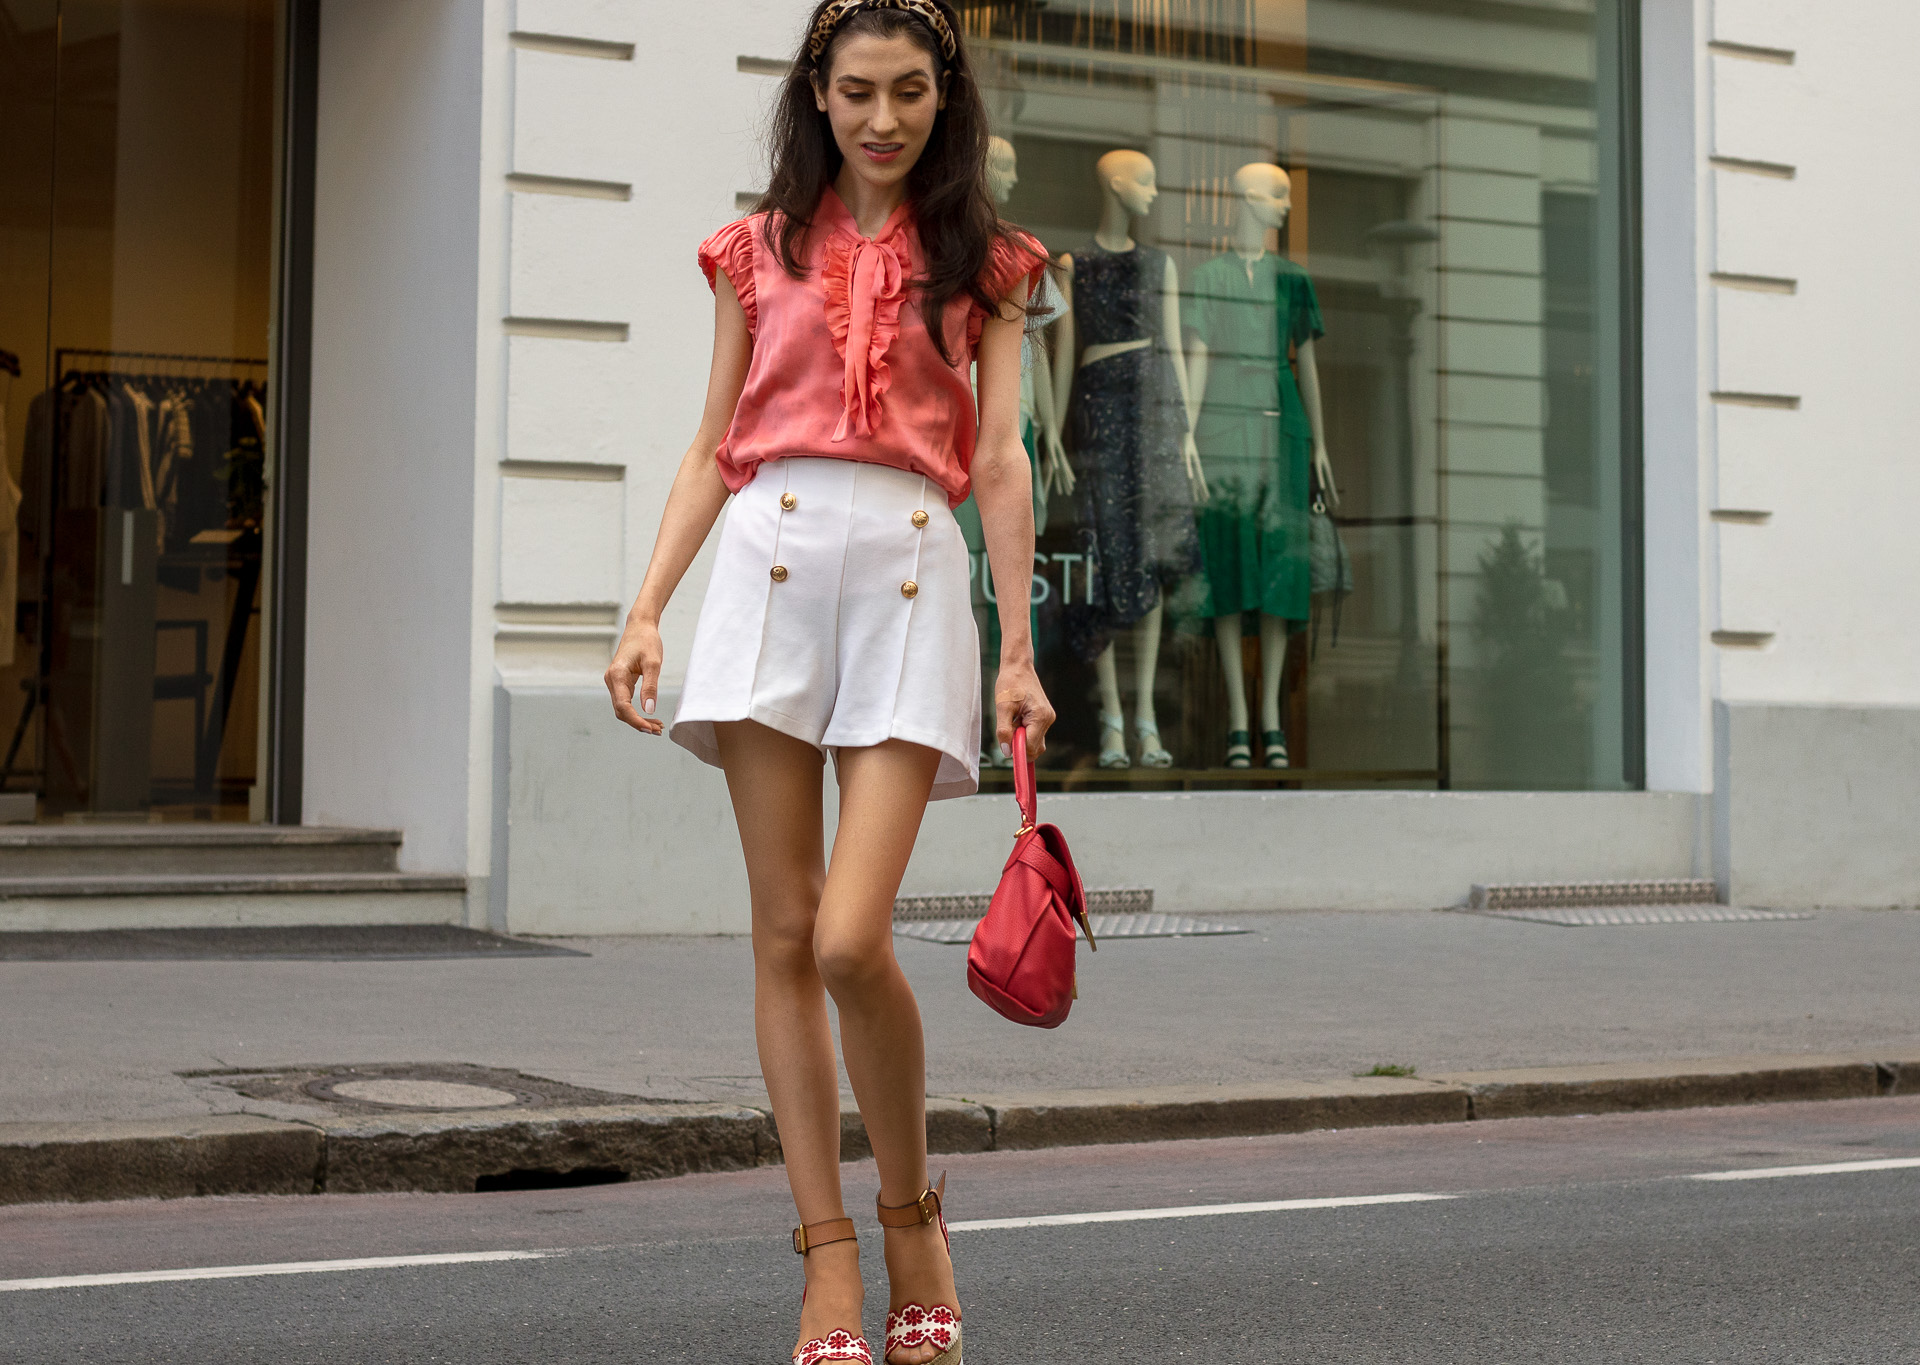 Gossip Girl Veronika Lipar Fashion Blogger of Brunette from Wall Street wearing peachy orange pussy-bow tie blouse white shorts leopard print headband pink top handle bag See by Chloe wedge espadrille sandals walking down the street